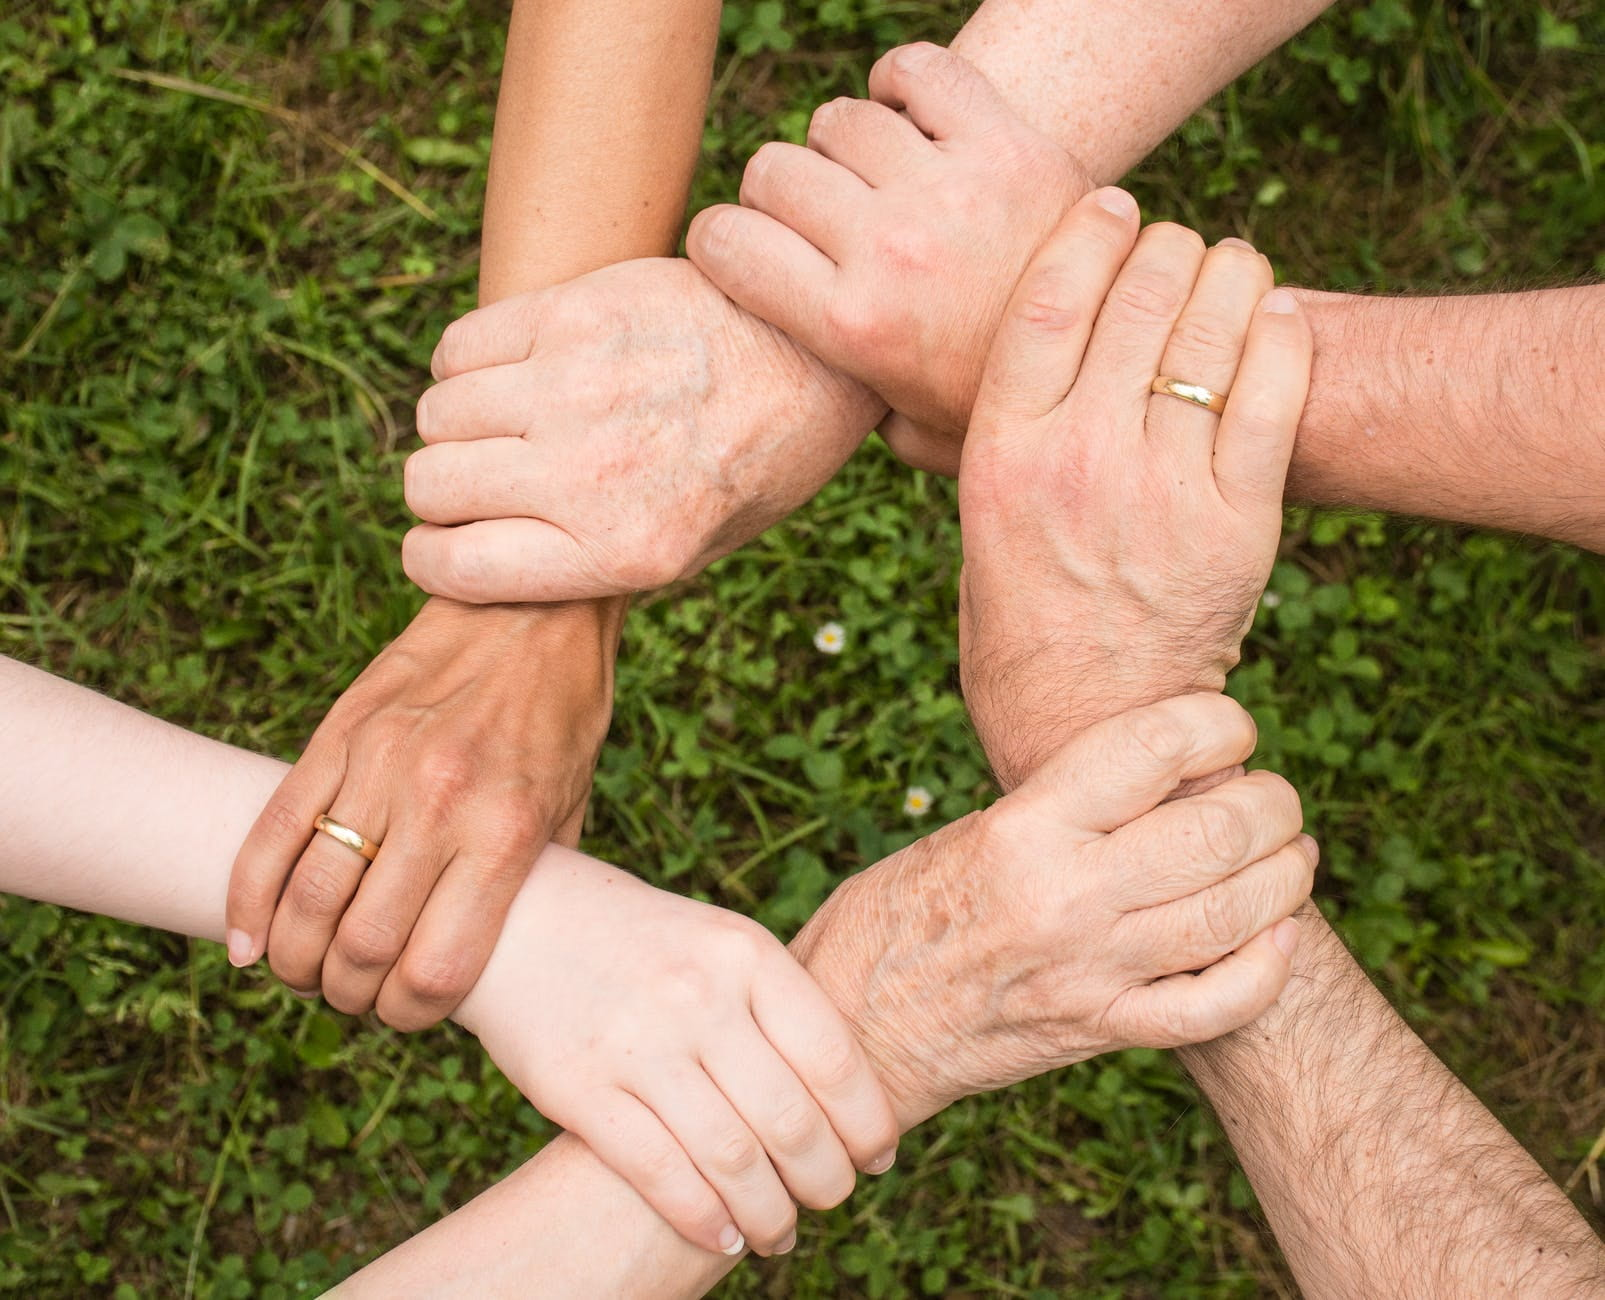 five hands and arms linked on grass background